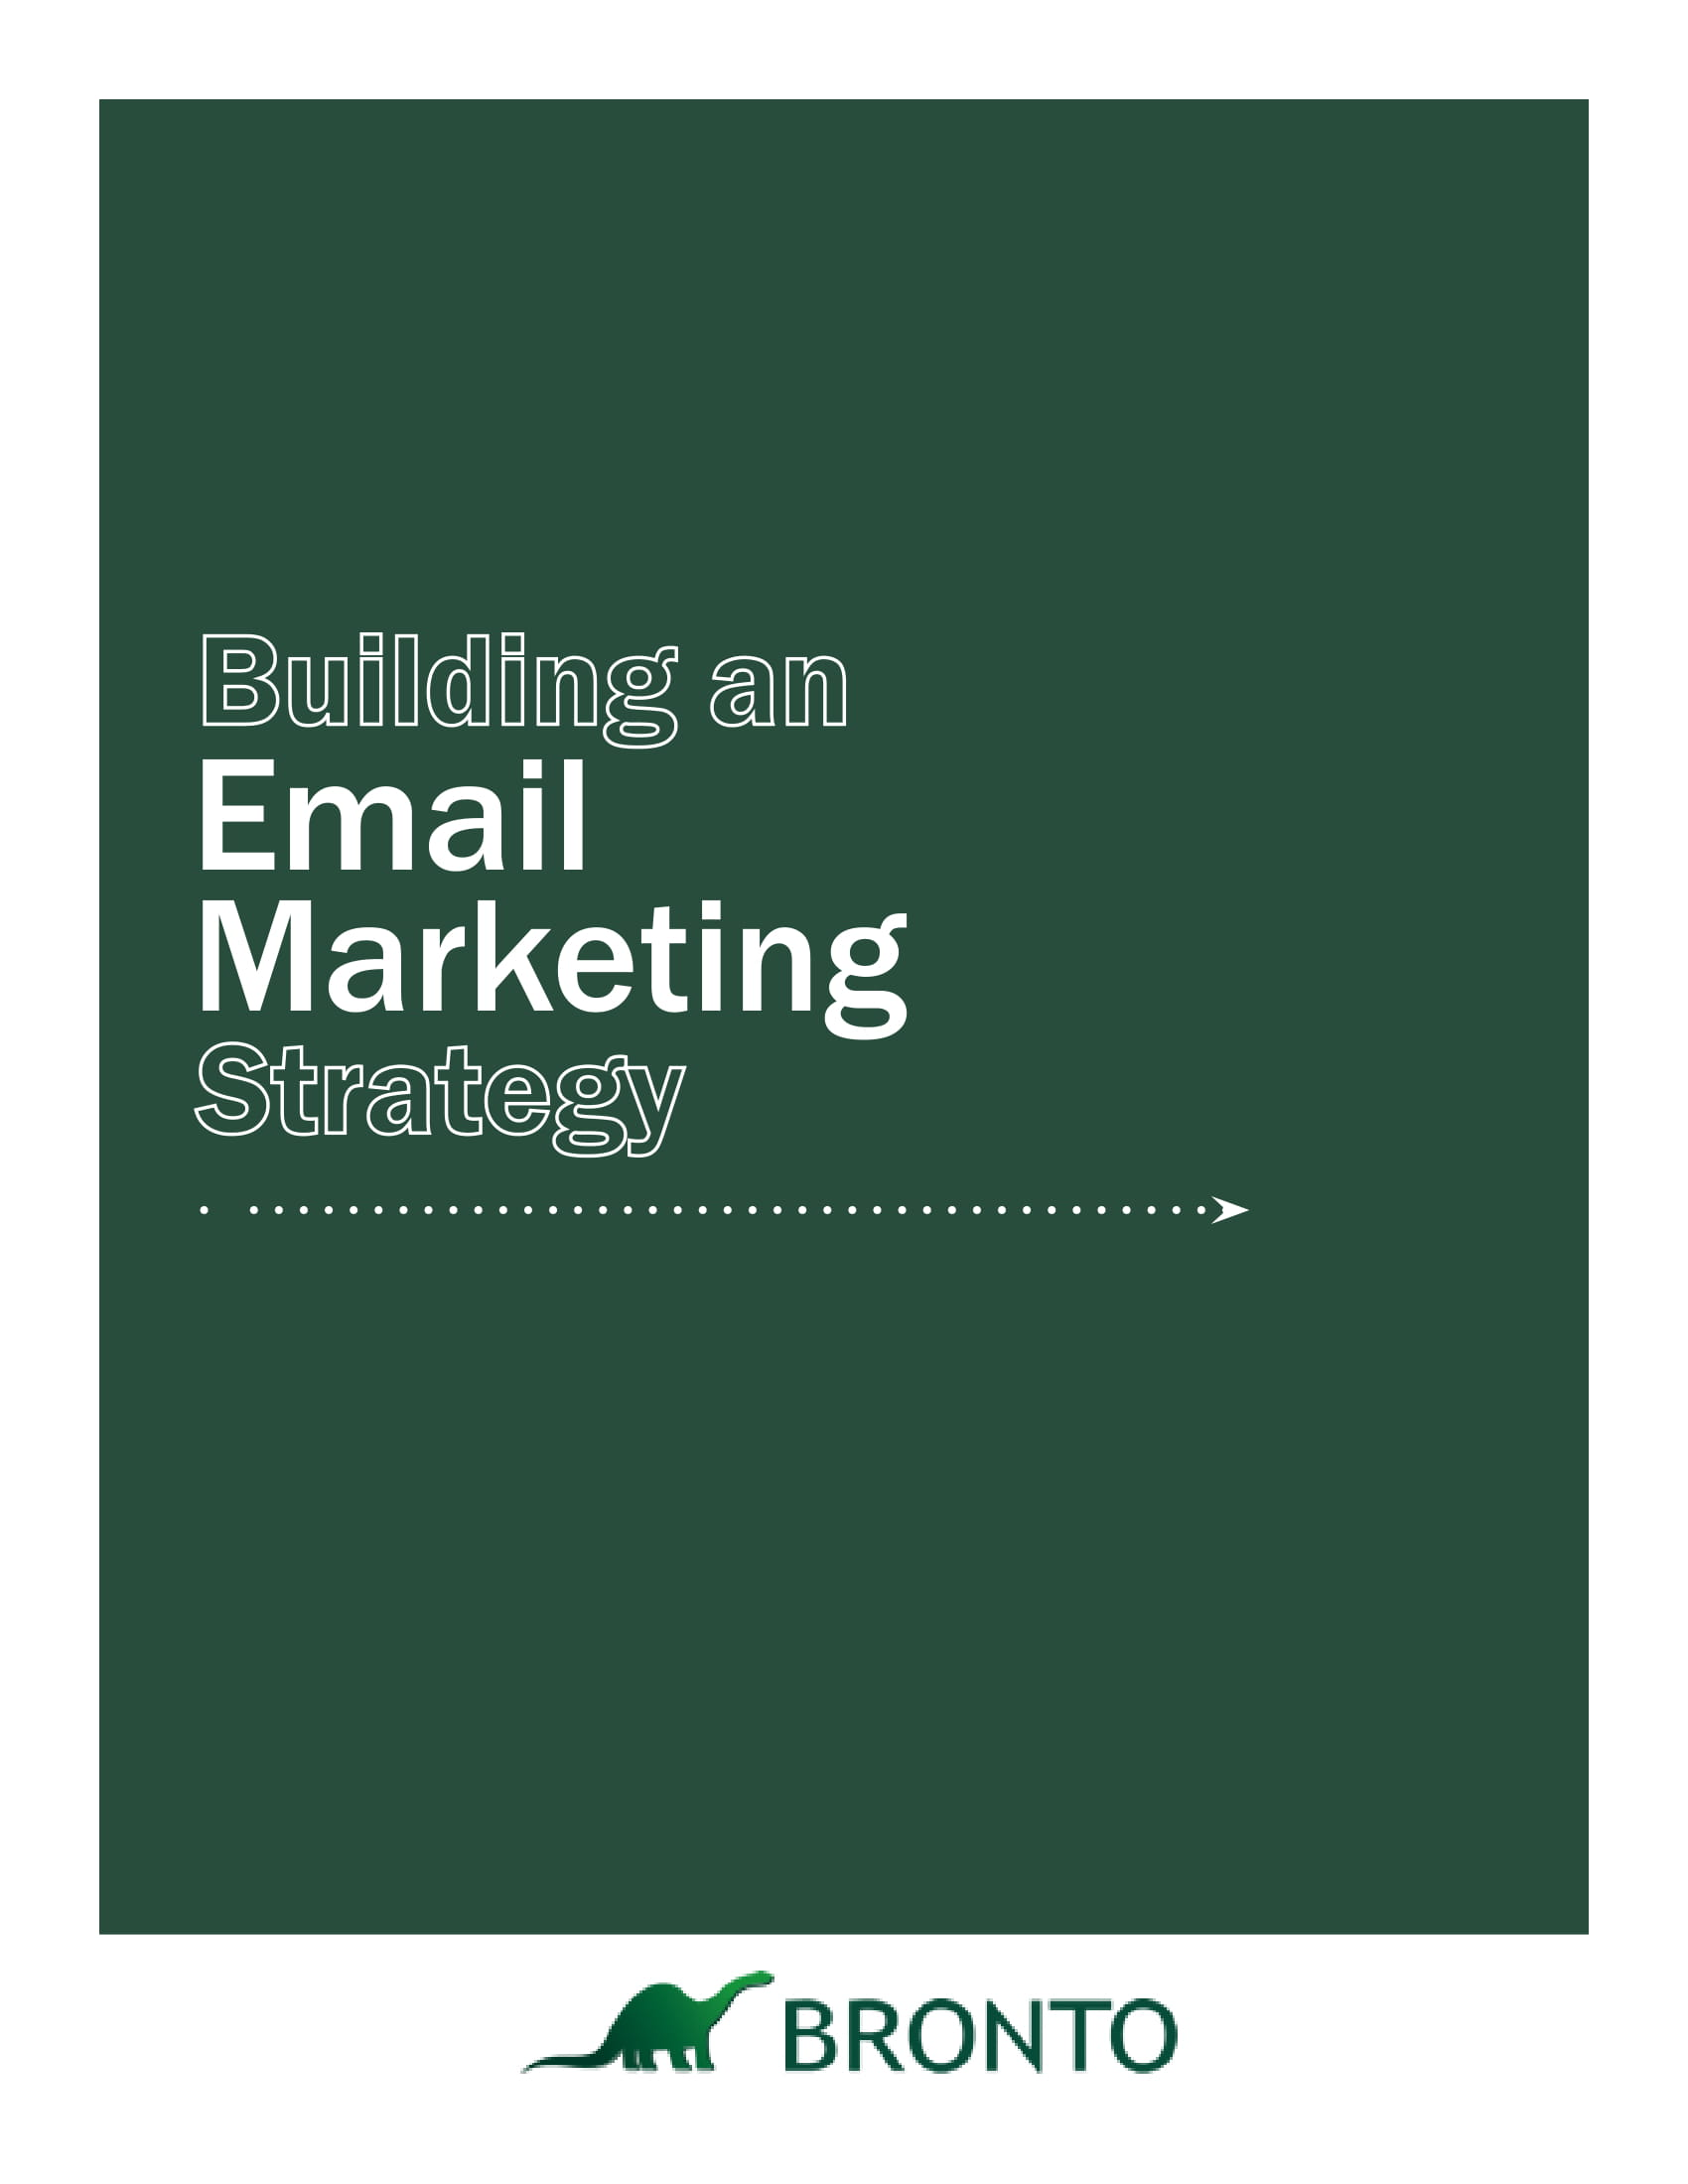 strategic email marketing plan example 01